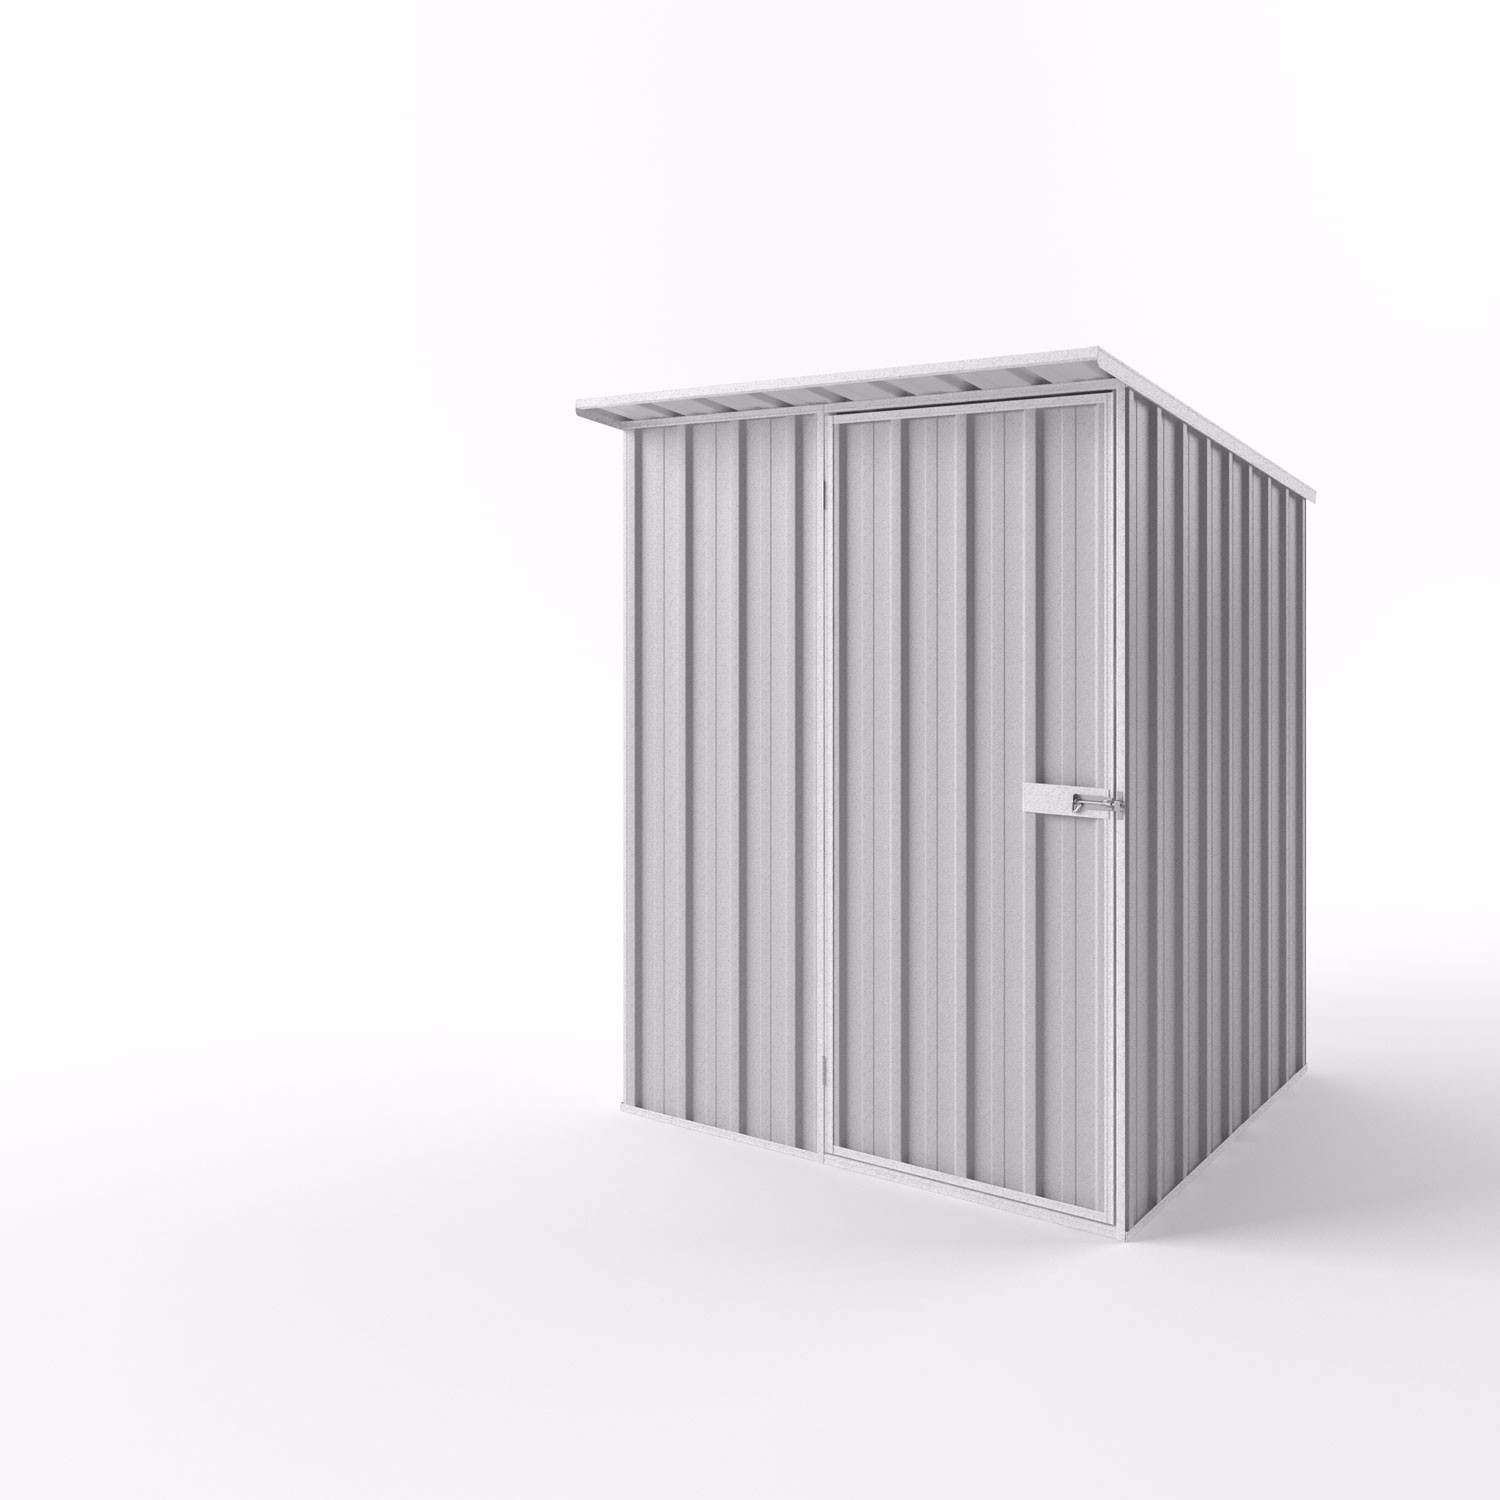 Skillion Garden Shed - 1.50m x 1.50m x 2.10m Height - Wide Span Sheds